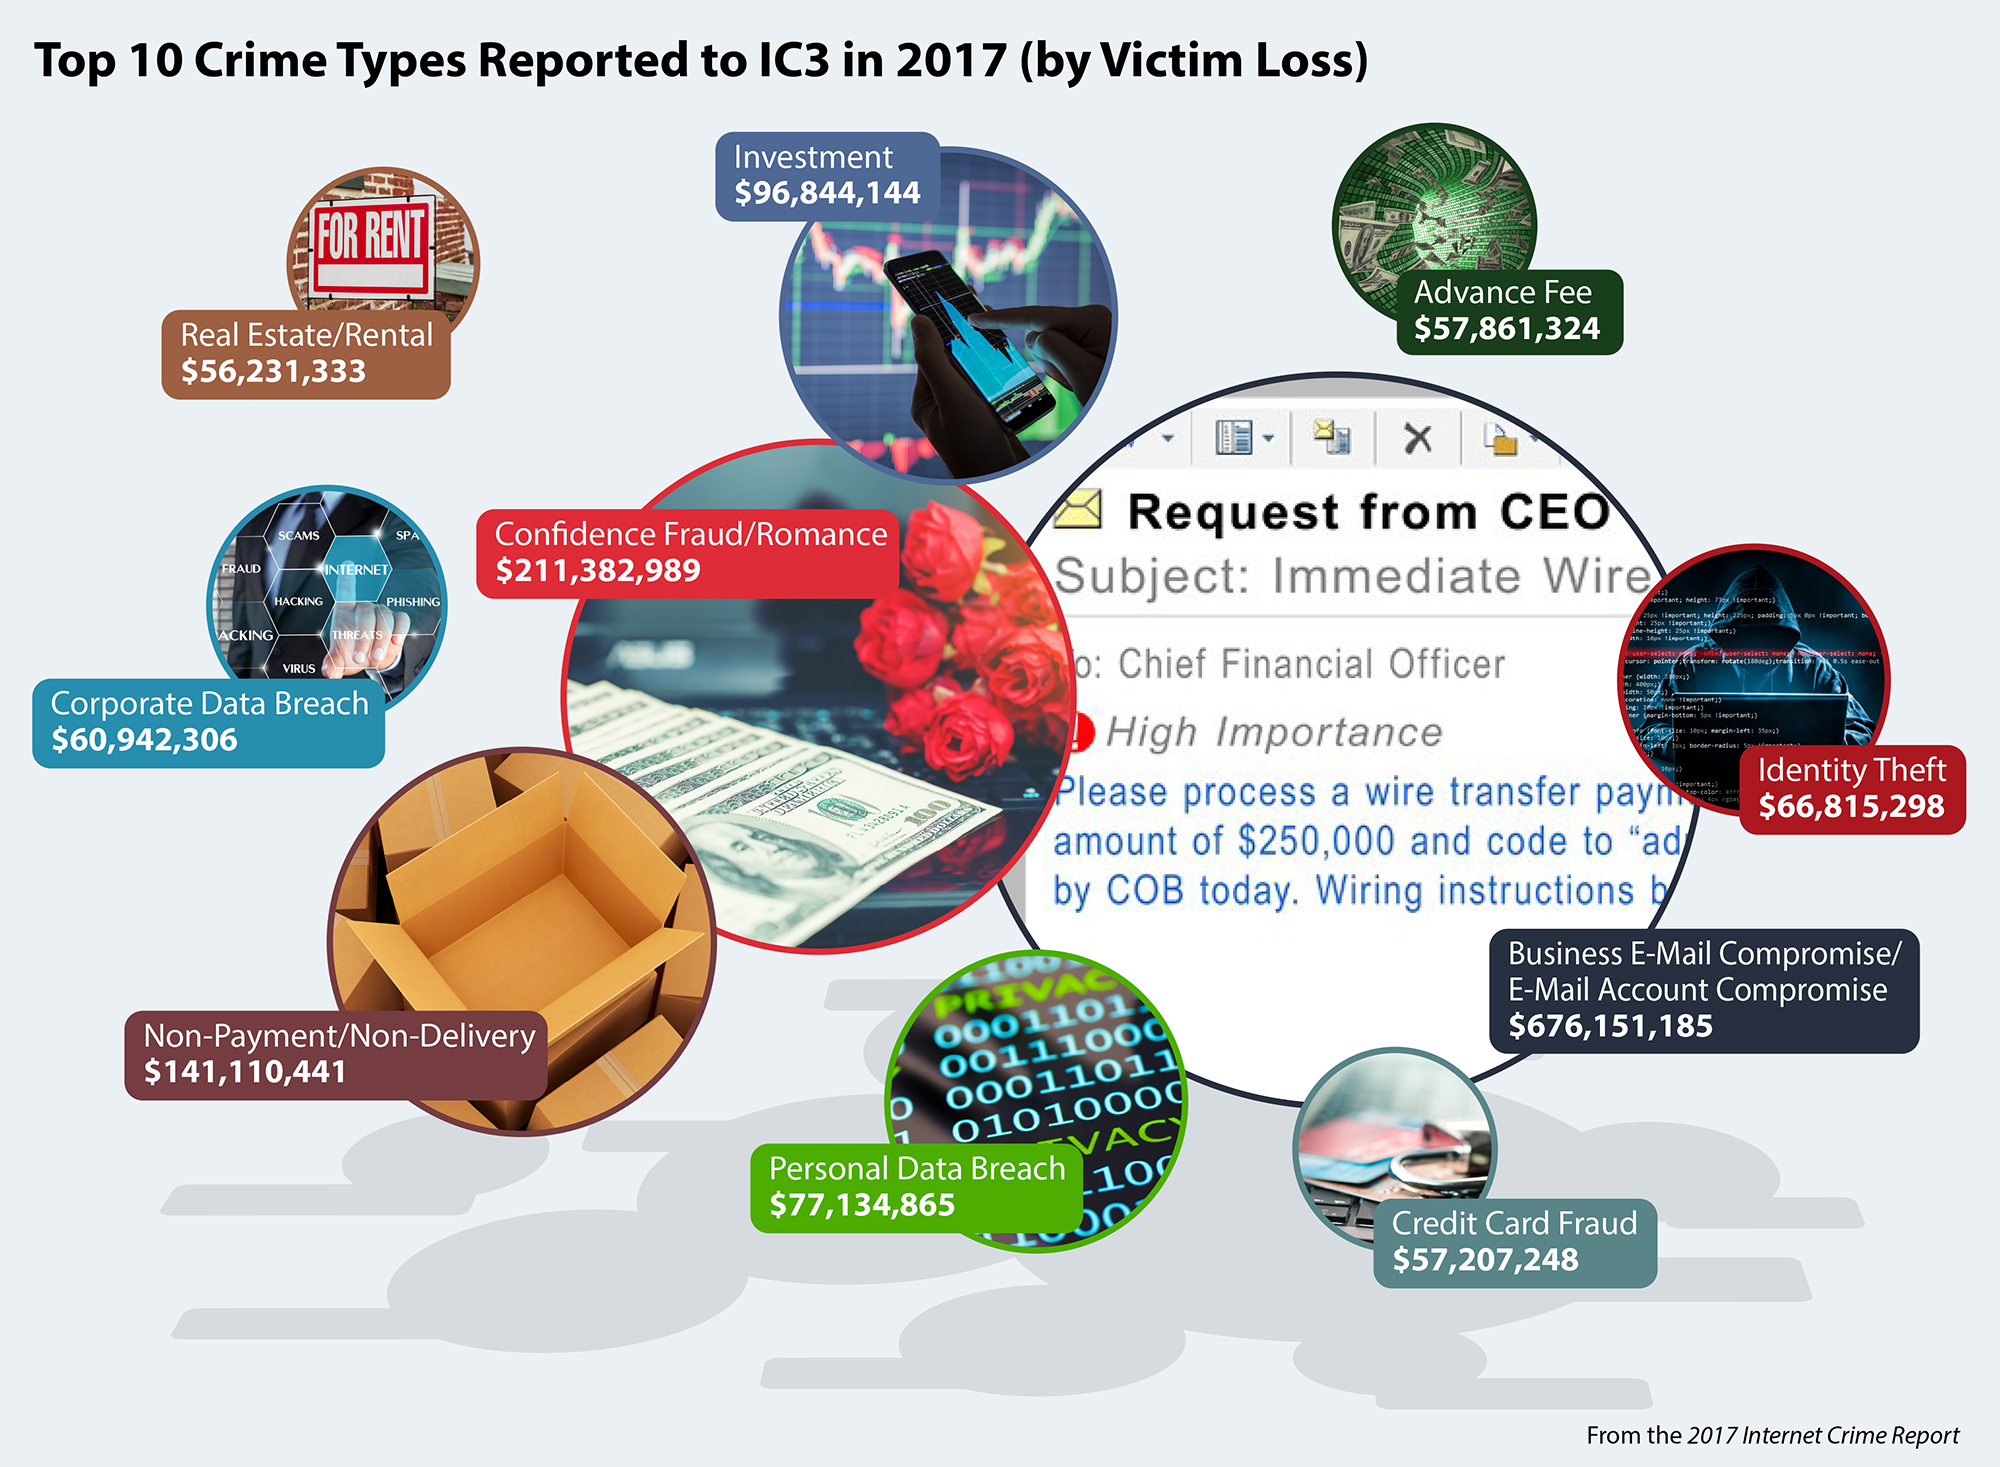 Bubble chart infographic showing top 10 crime types, by victim losses, reported to IC3 during 2017.